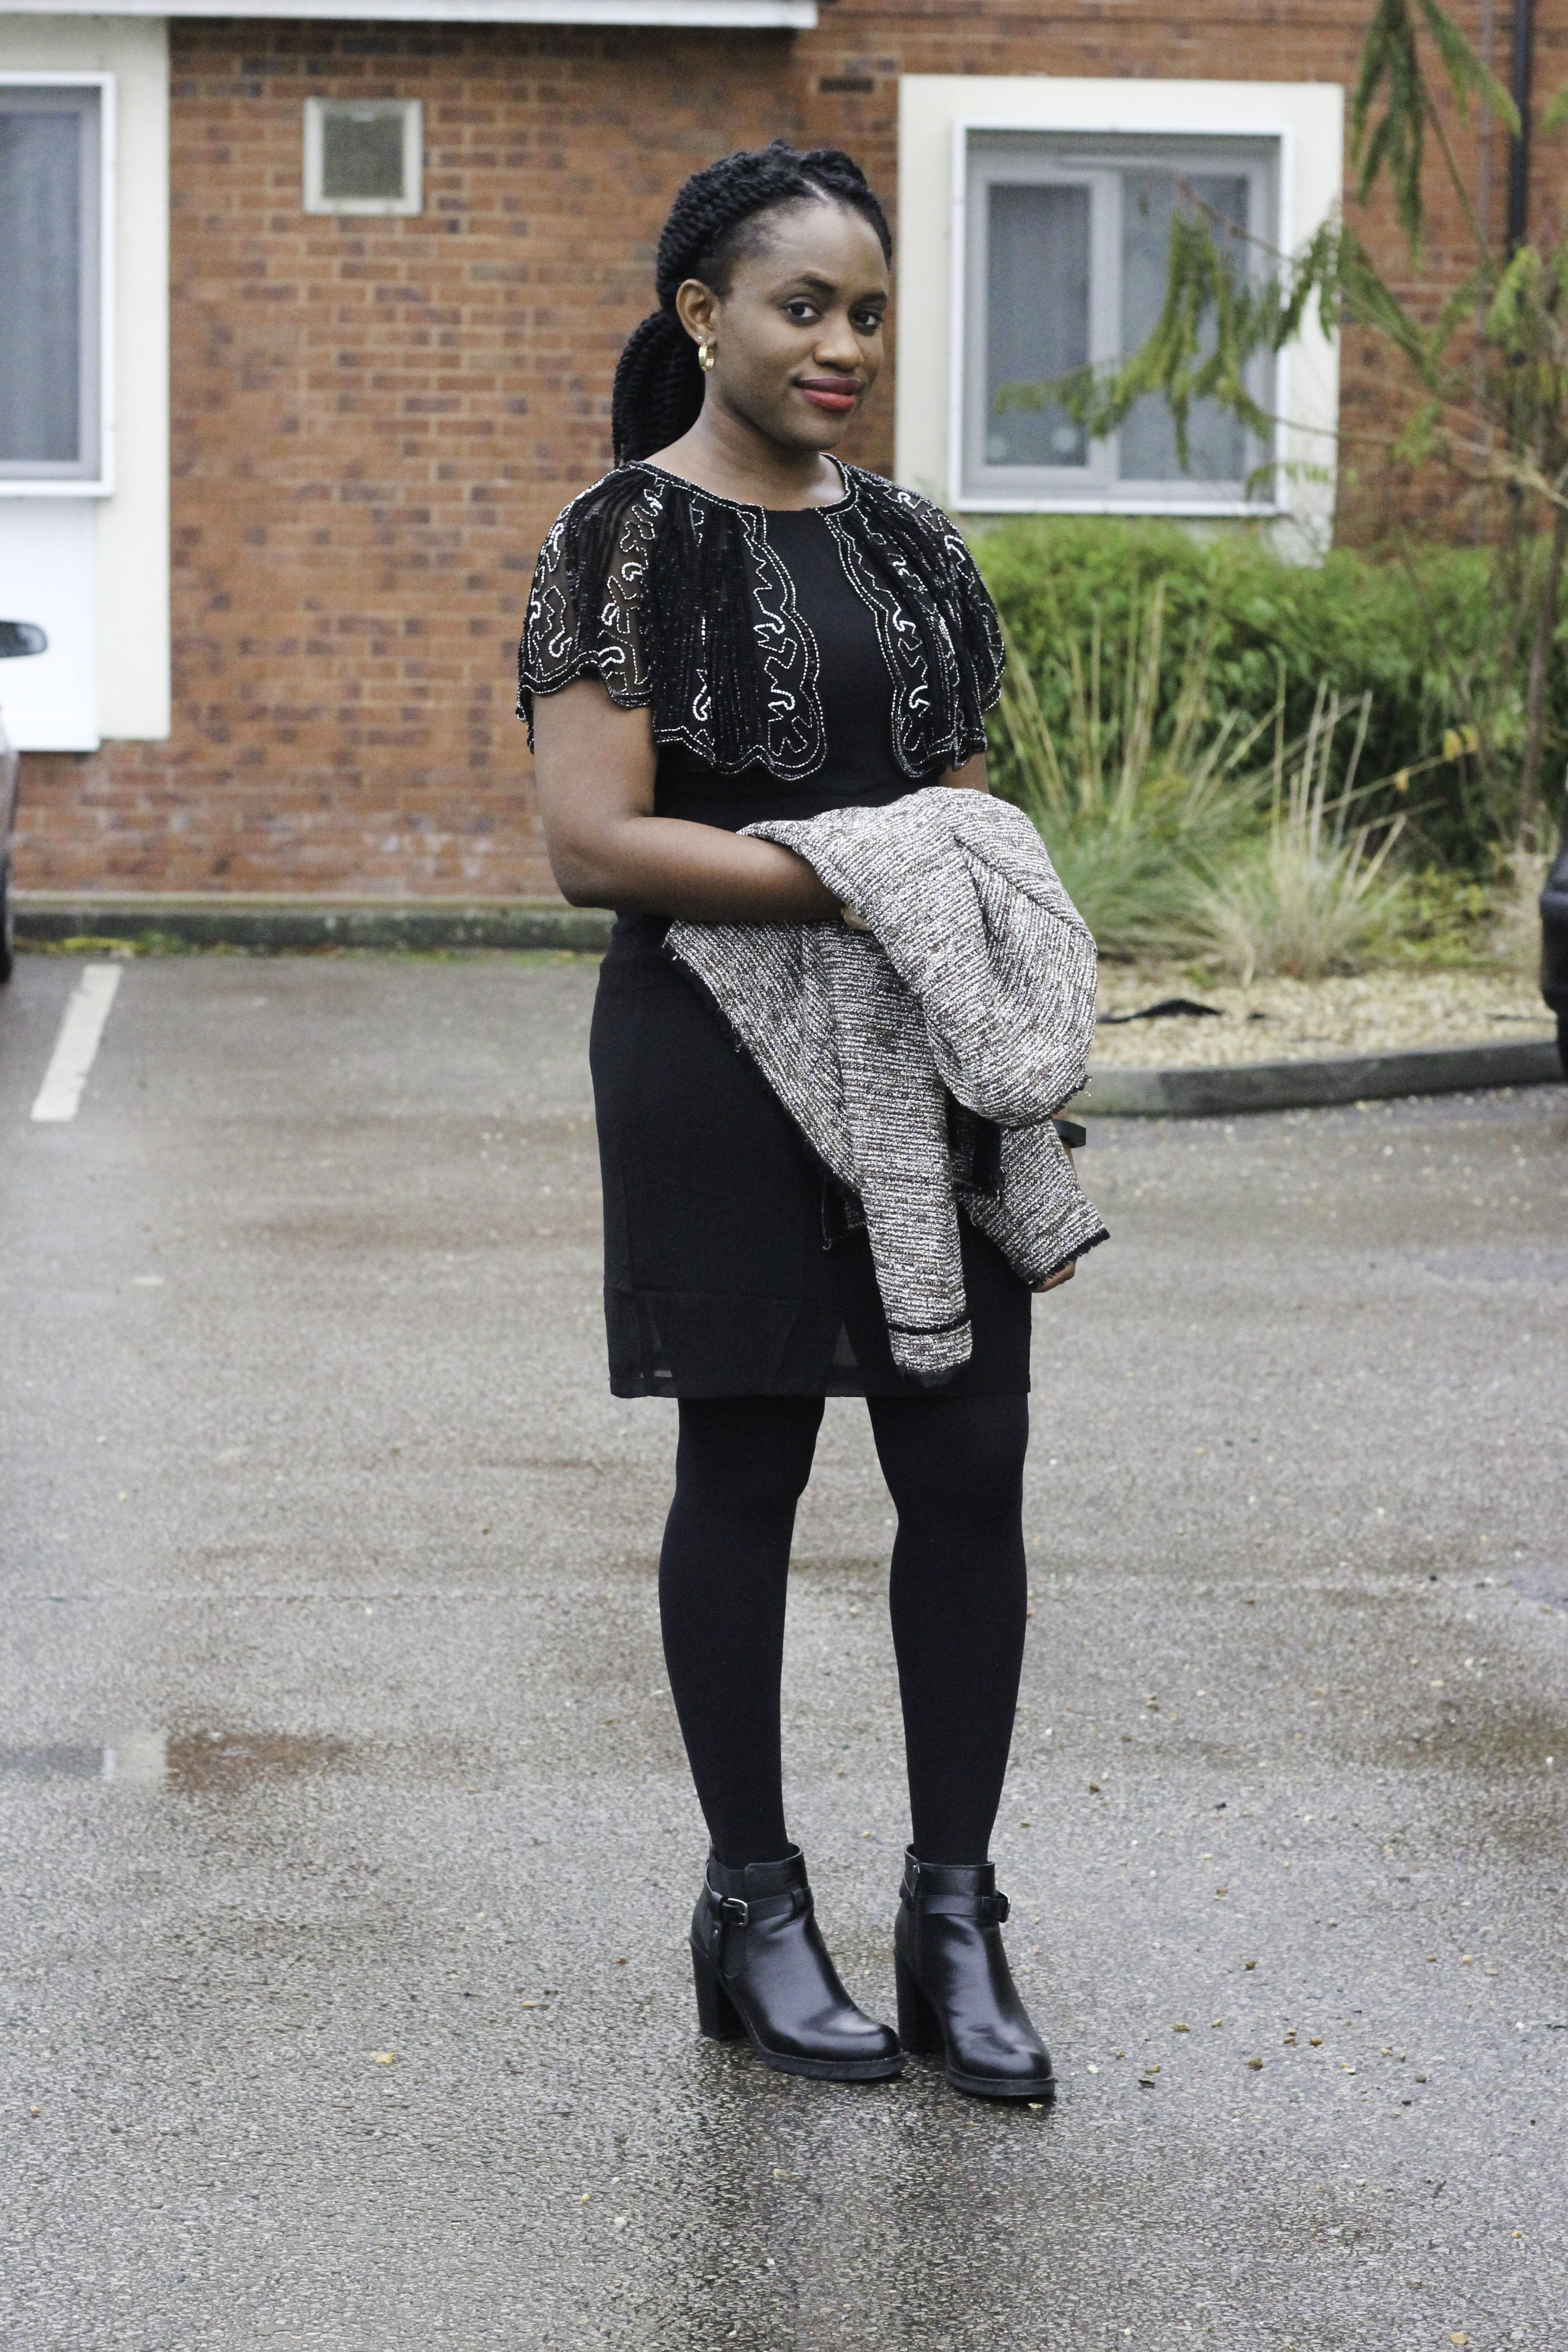 Black dress comments - Black Dress Img What Do You Think Of This Look Please Sound Off In The Comments Section Below Thanks For Reading And Have A Lovely Weekend